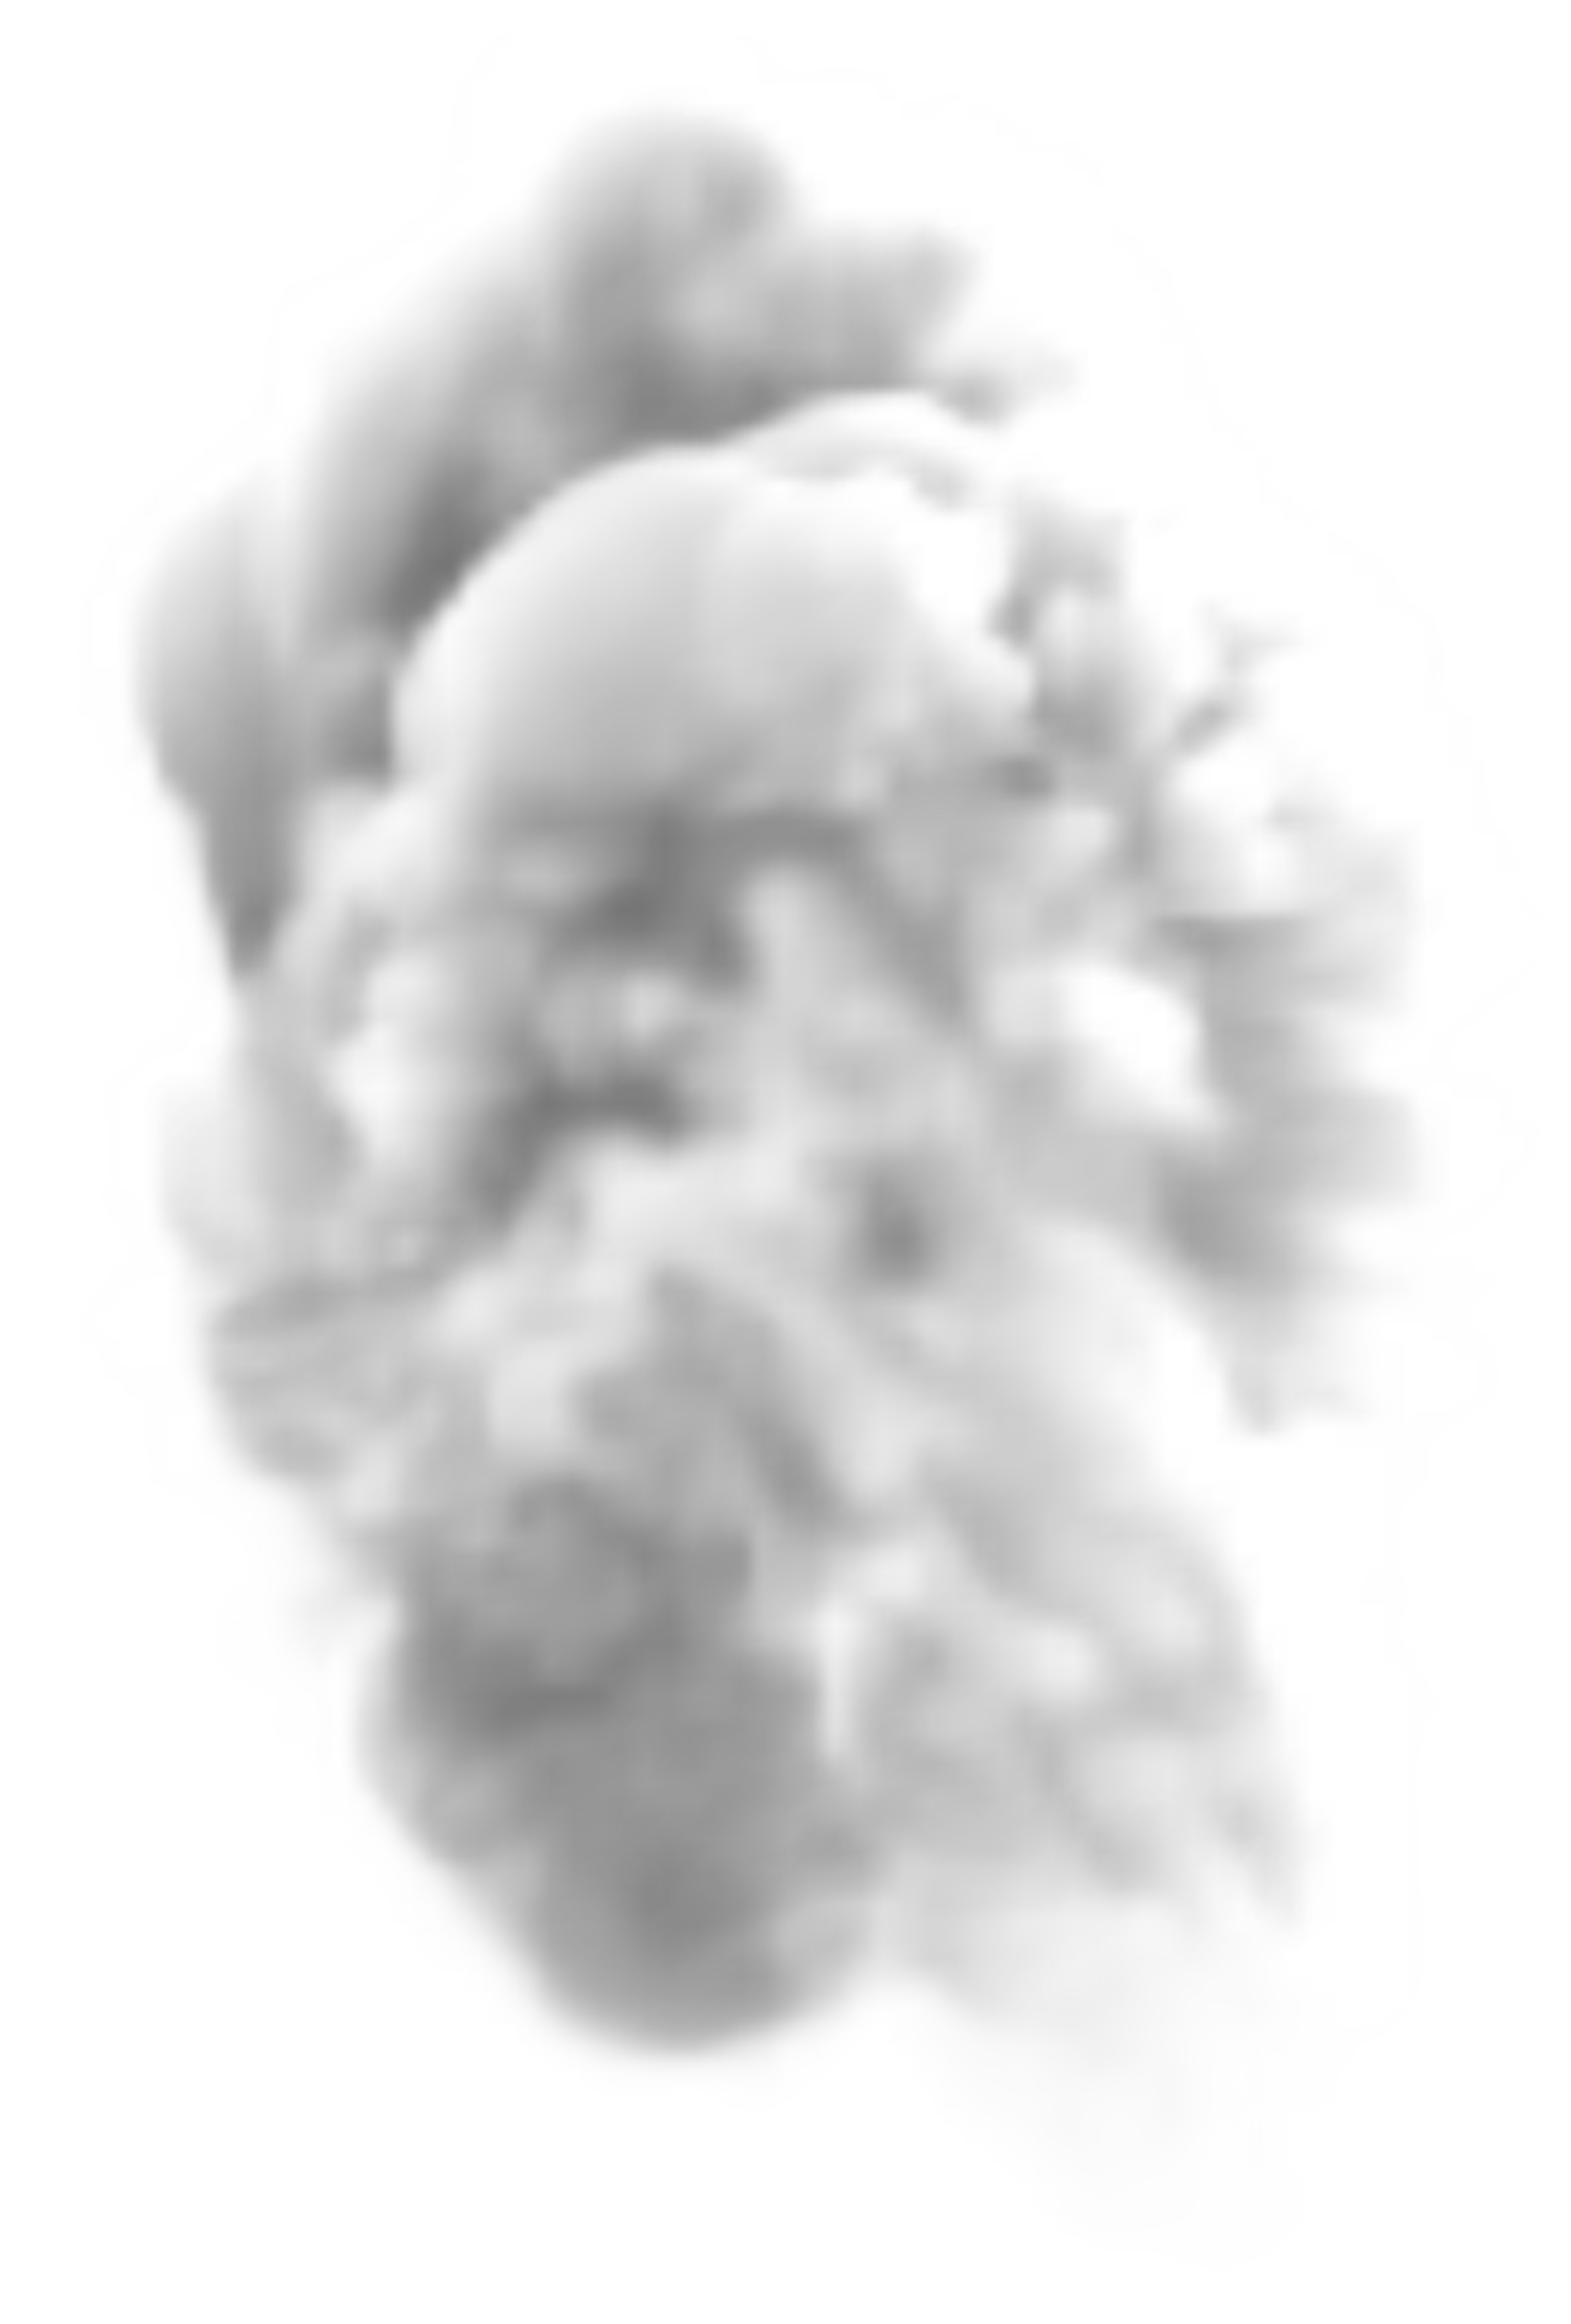 Smoke ball png. Transparent clipart image gallery